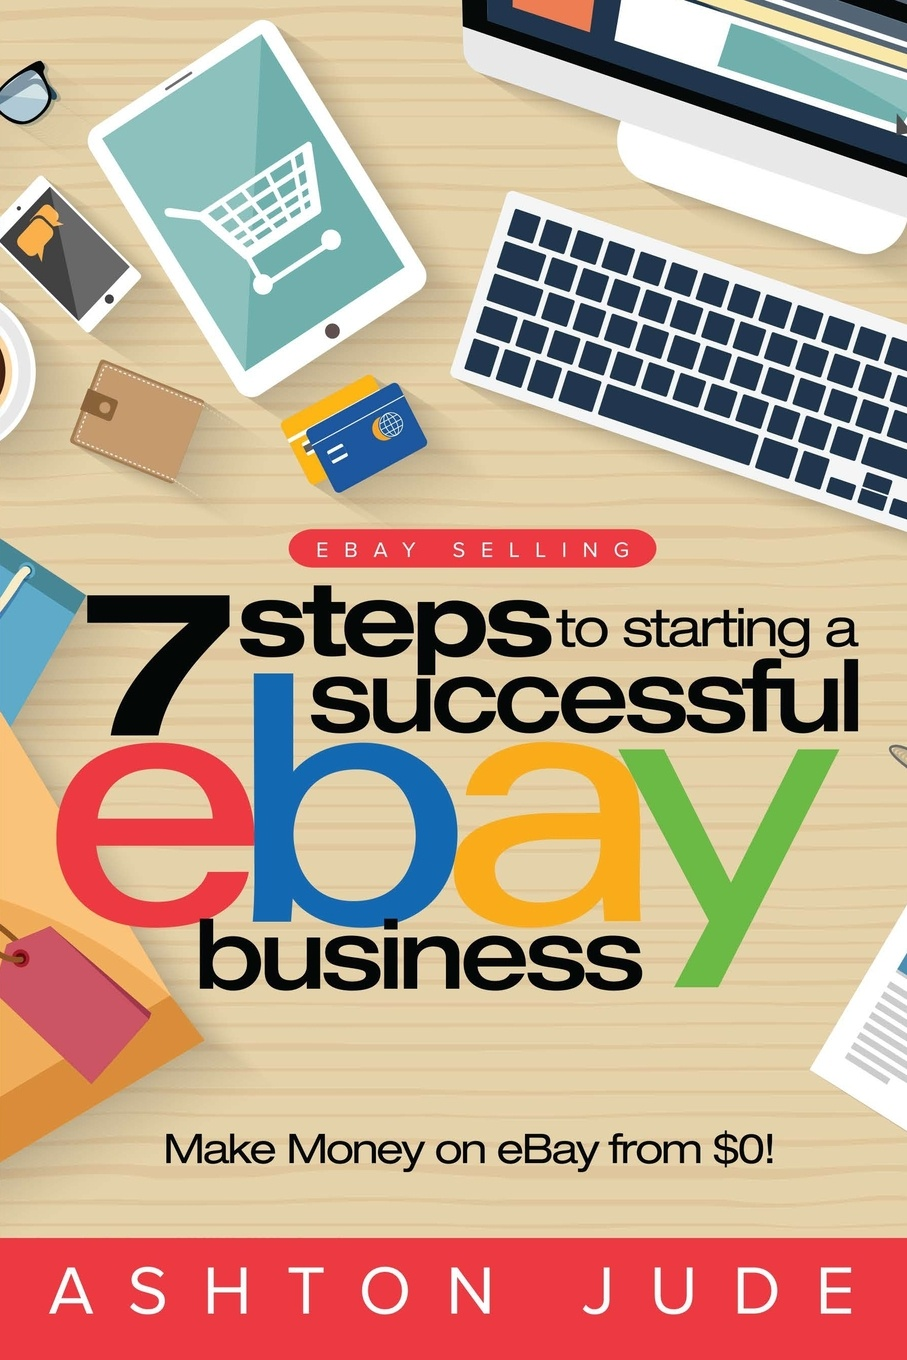 Ashton Jude eBay Selling. 7 Steps to Starting a Successful eBay Business from .0 and Make Money on eBay: Be an eBay Success with your own eBay Store (eBay Tips Book 1) ebay